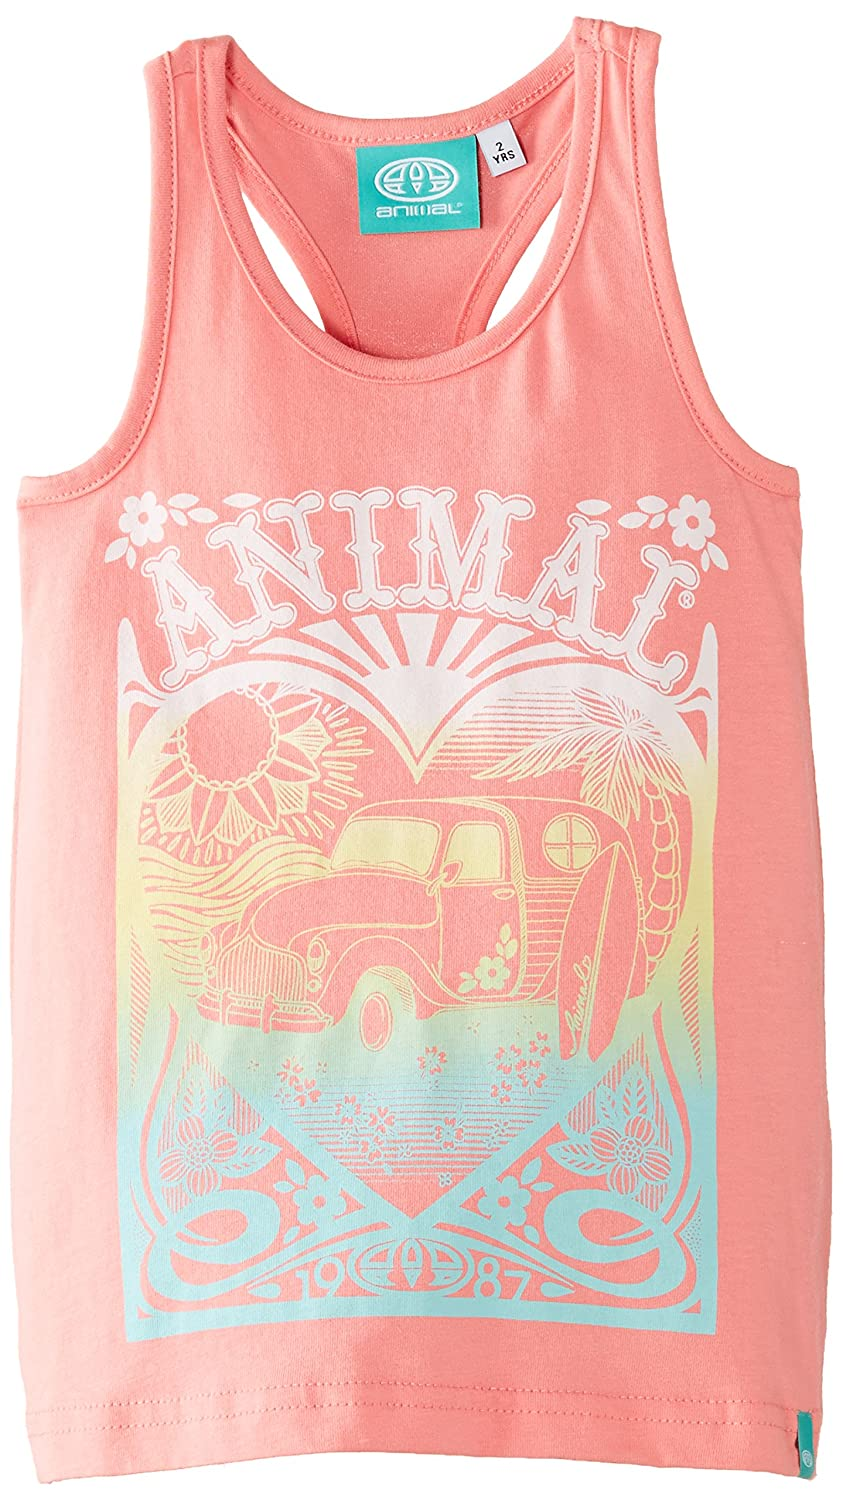 Animal Girl's Bellia Tank Top Orange (Peach) CL5SG814-G07-GS